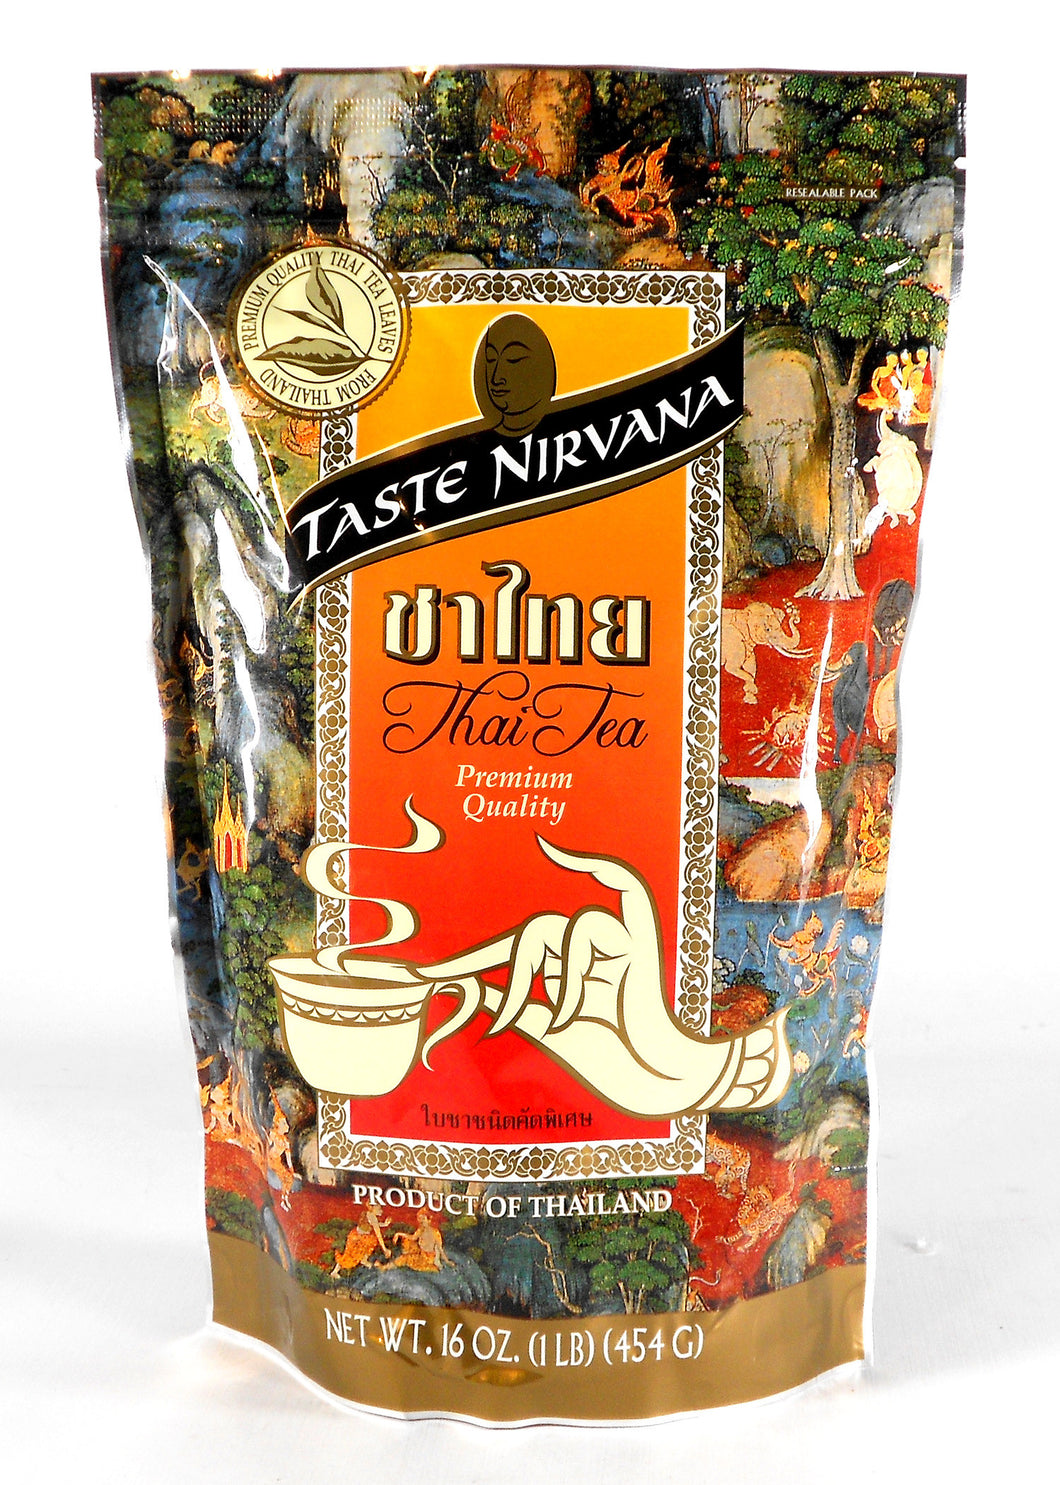 Taste Nirvana Premium Thai Tea Leaves Mix 16 Oz.